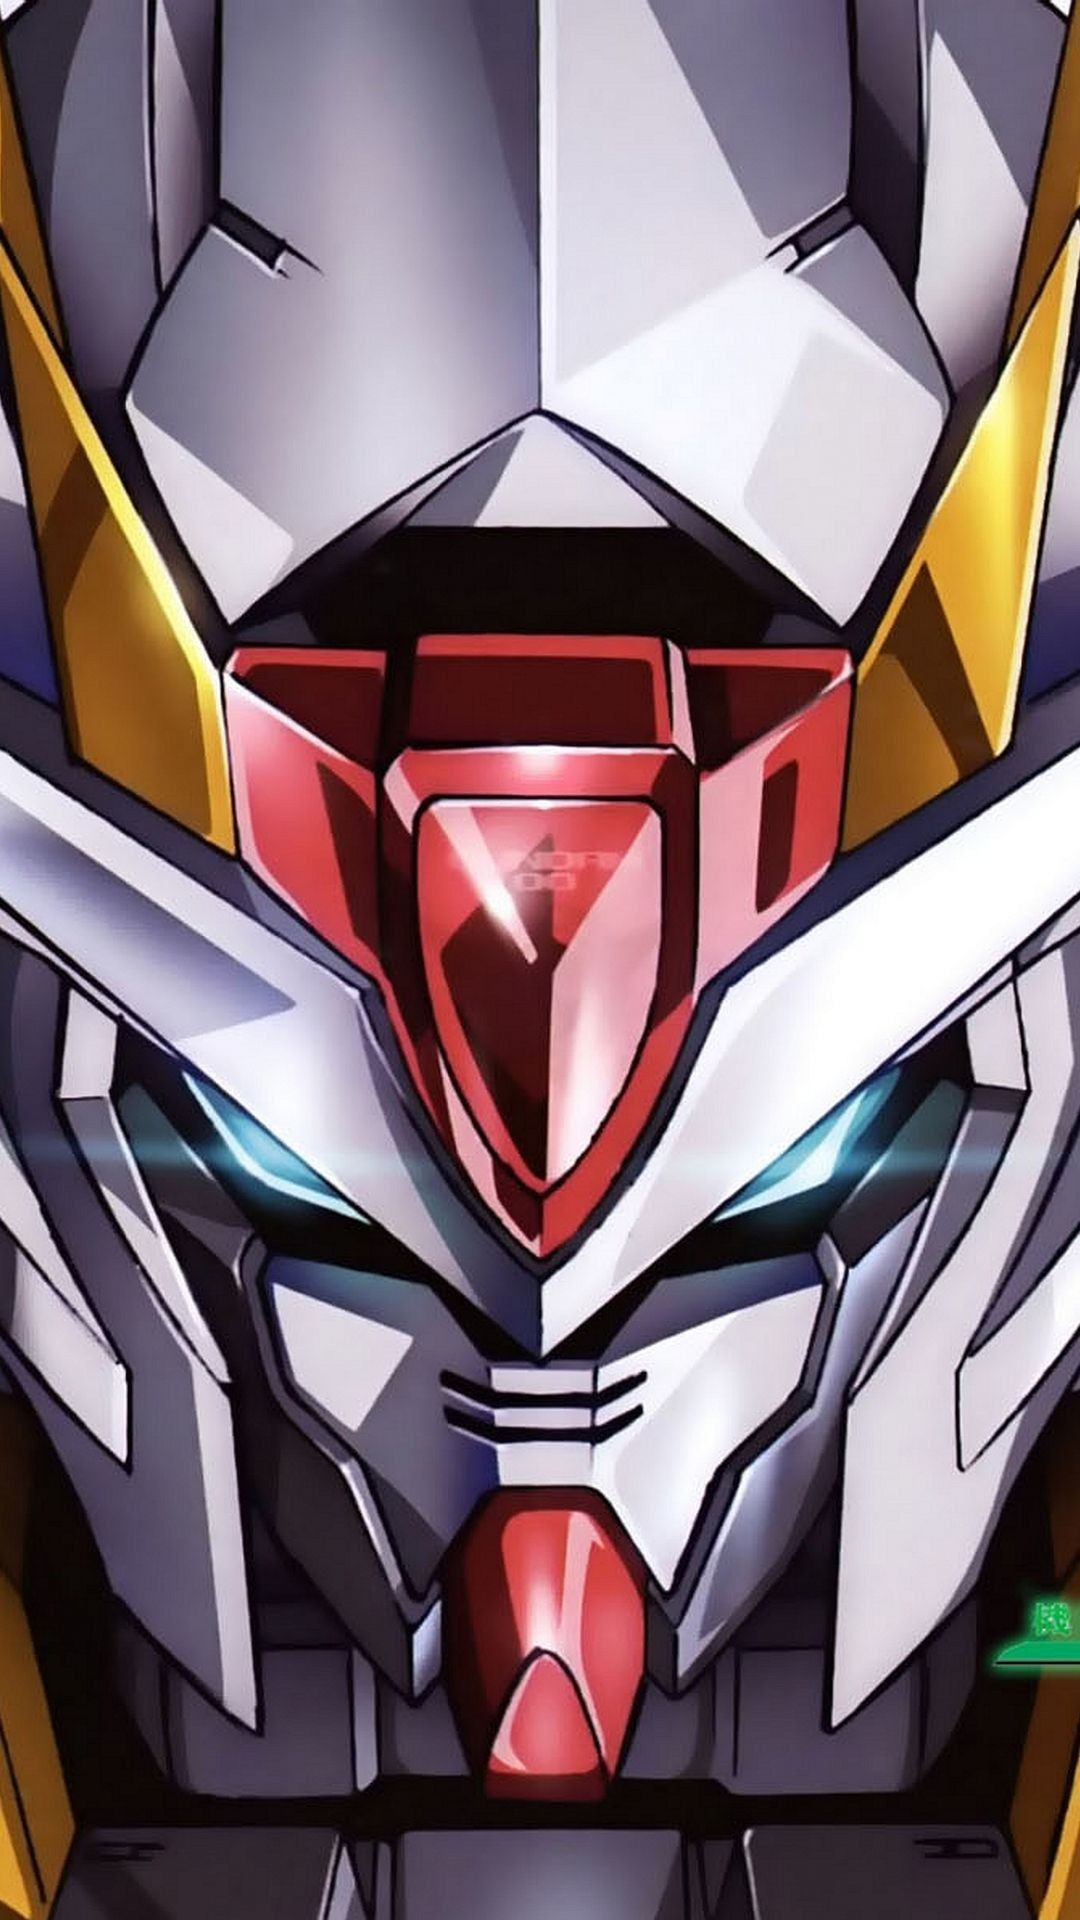 1080x1920 Iphone 5 Anime Gundam Wallpaper Id 547962 Gundam Wallpapers Gundam Art Gundam